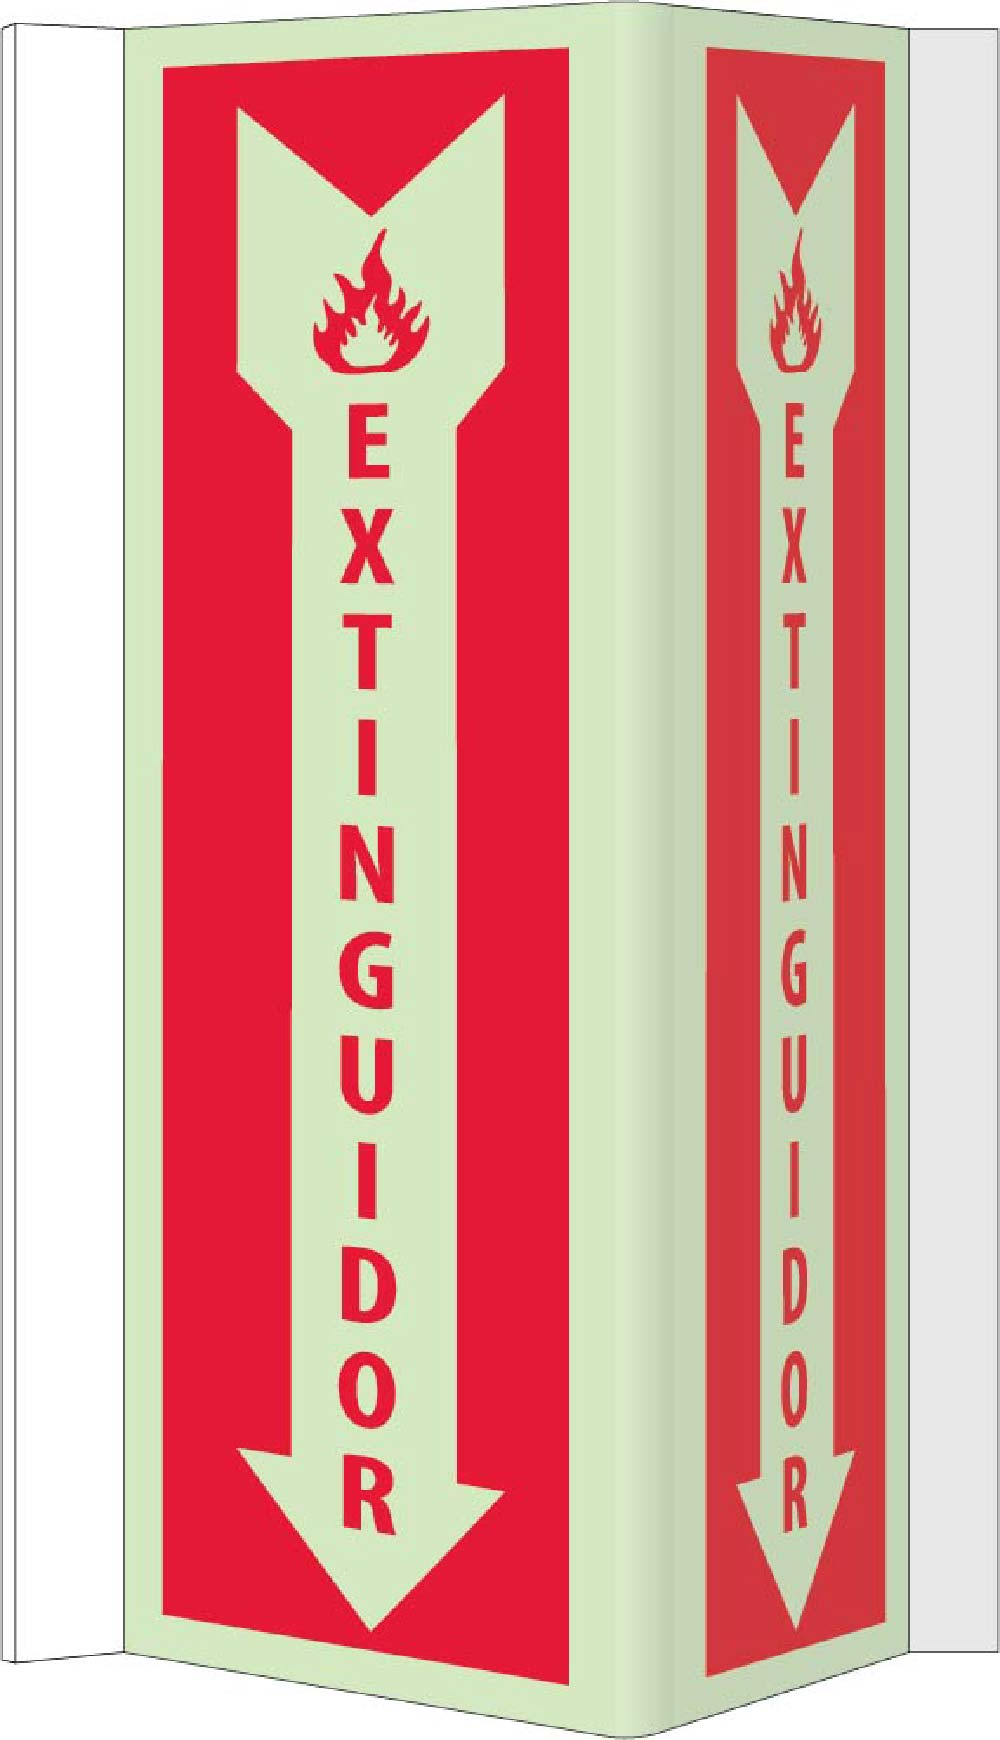 Extinguisher Sign - Spanish